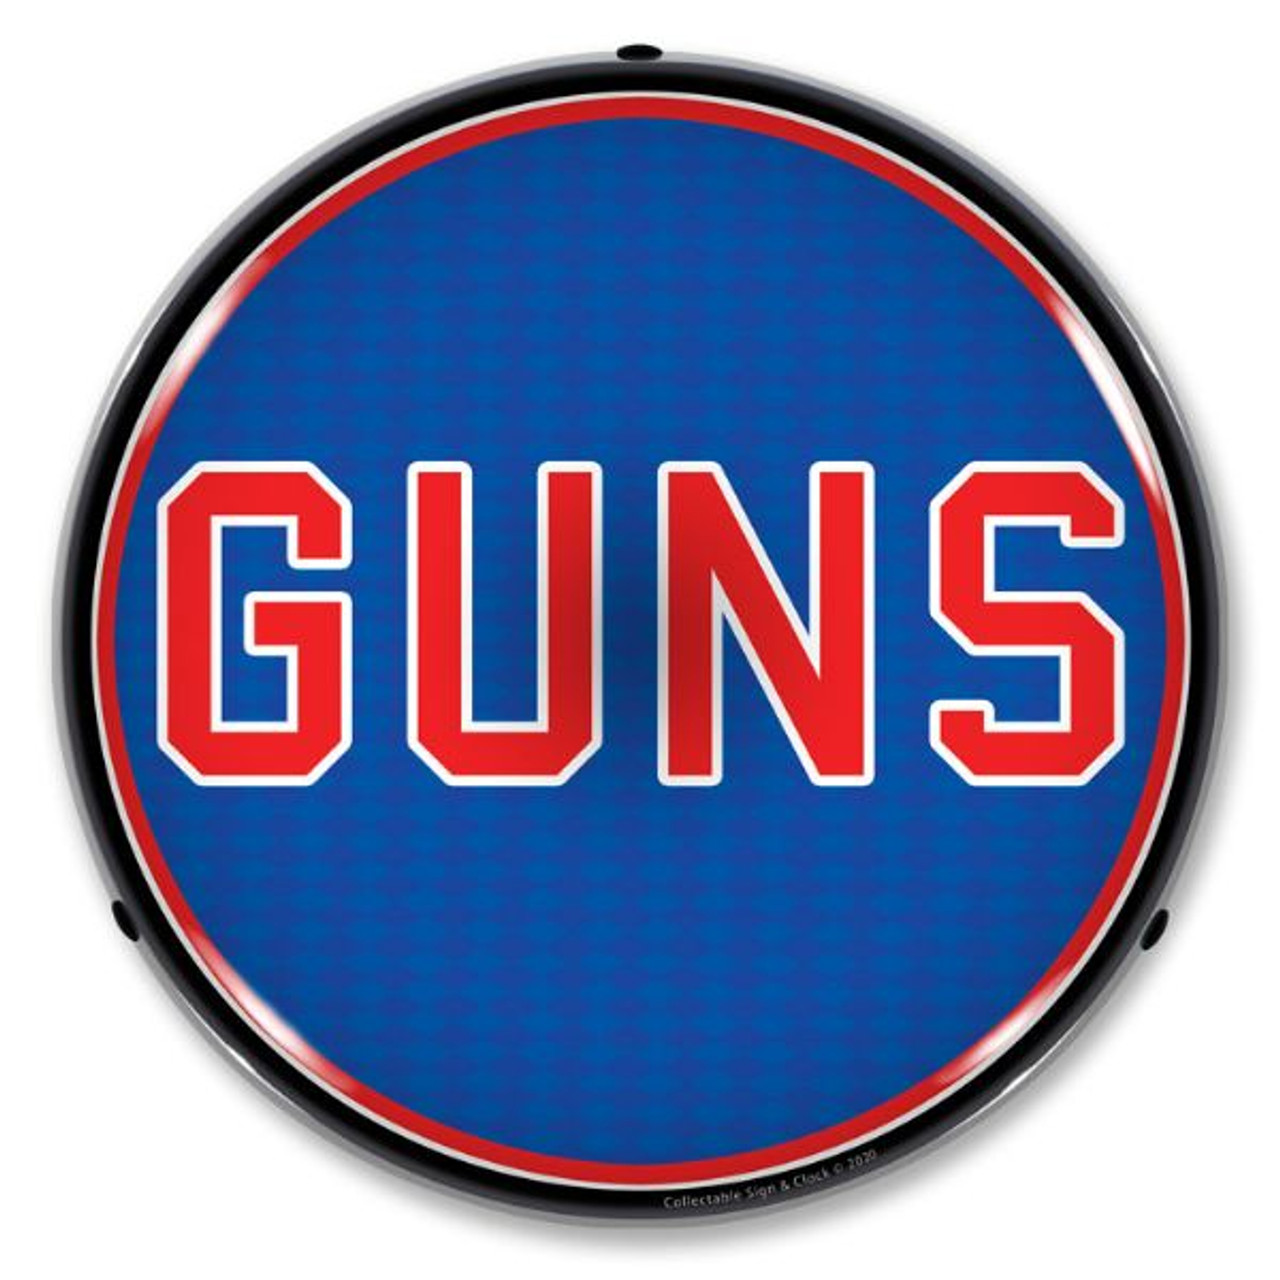 Guns LED Lighted Business Sign 14 x 14 Inches